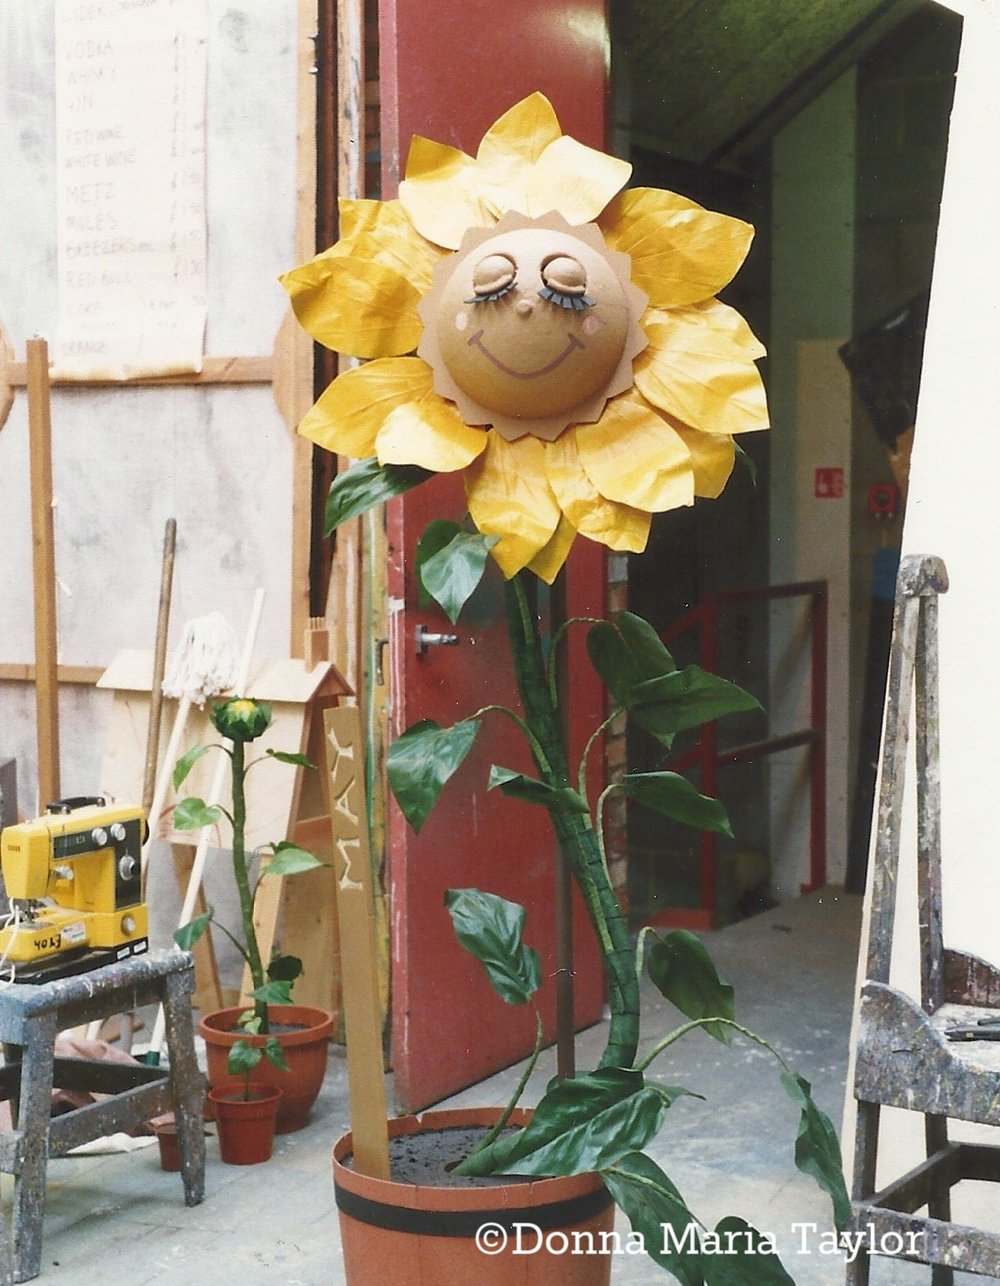 'Salman's Sunflower' - co-designed by Donna Maria Taylor and Tina Firkins.